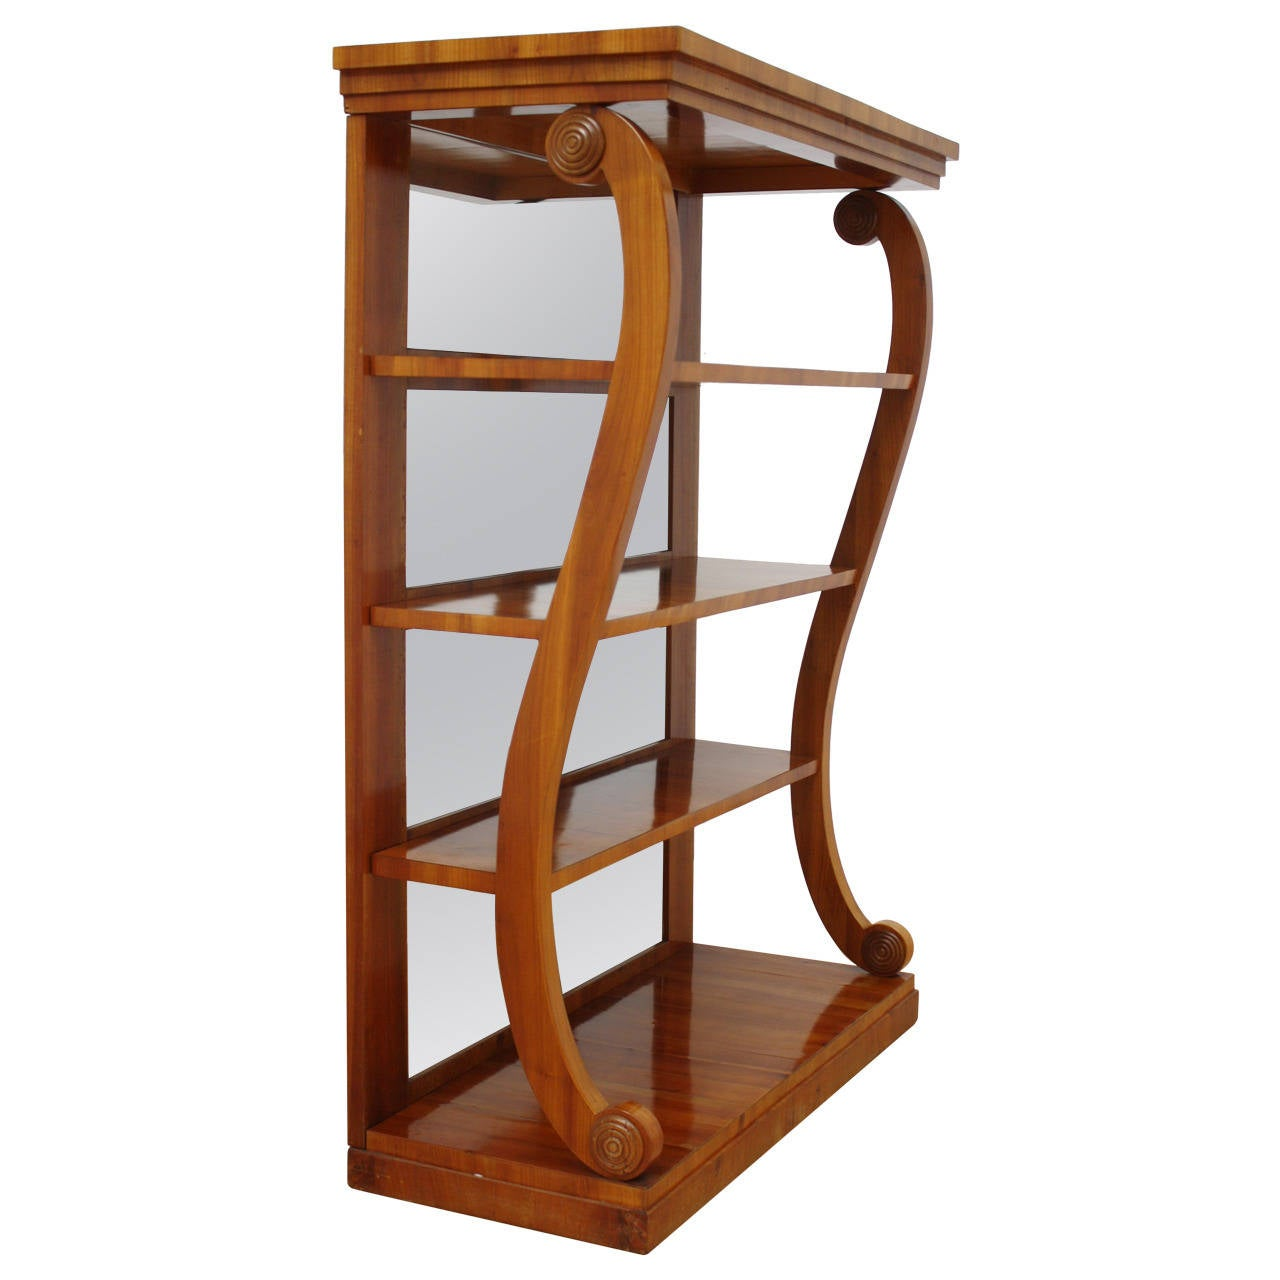 elegant biedermeier etagere for sale at 1stdibs. Black Bedroom Furniture Sets. Home Design Ideas